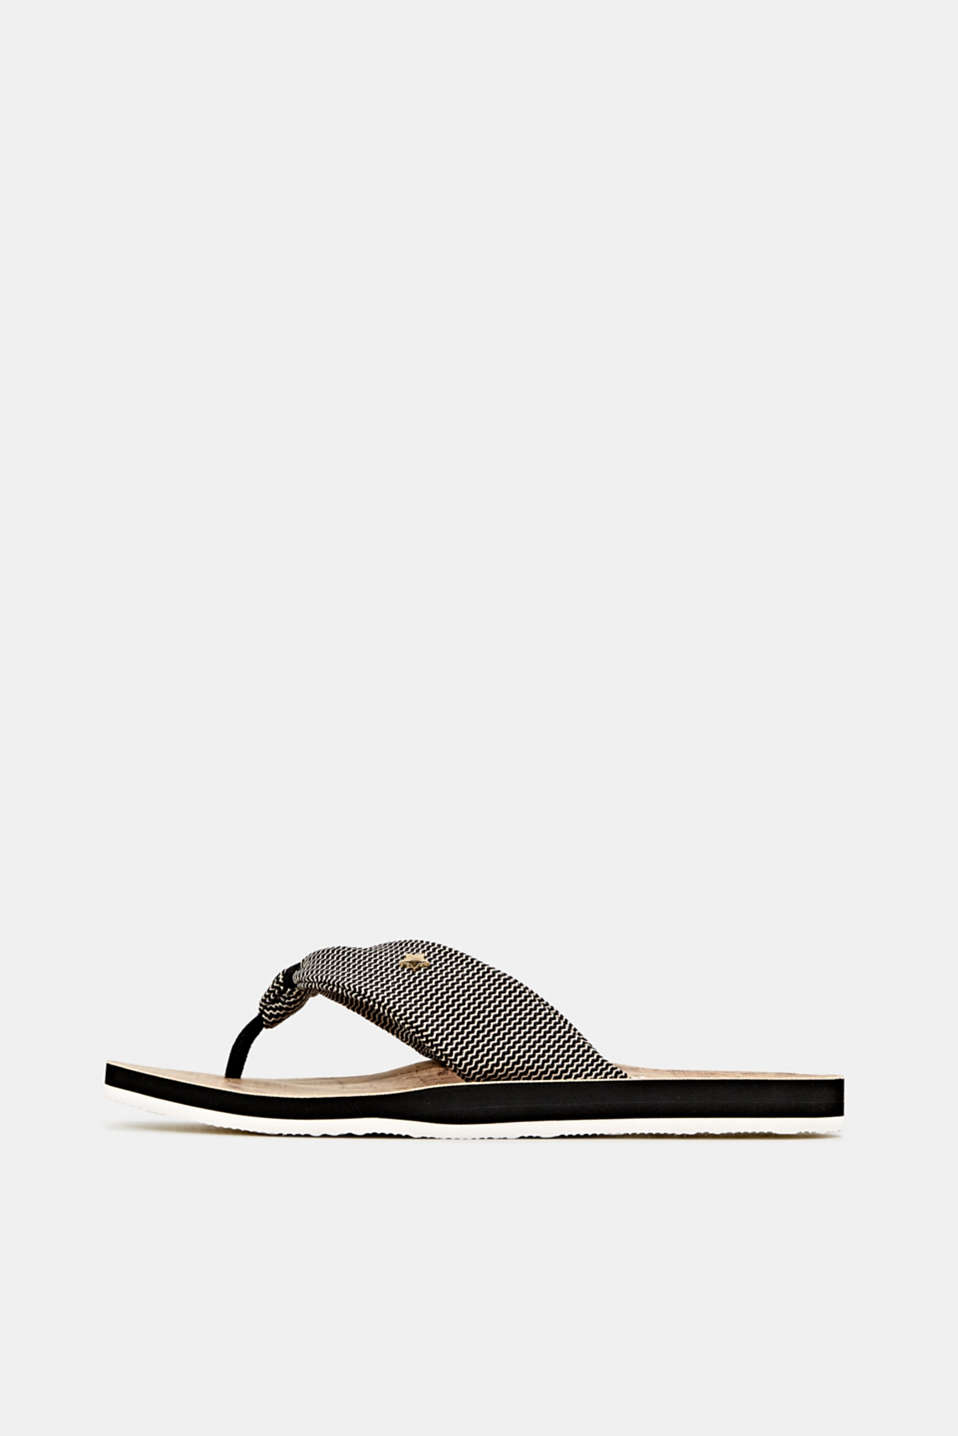 Esprit - Thong sandals with a woven texture